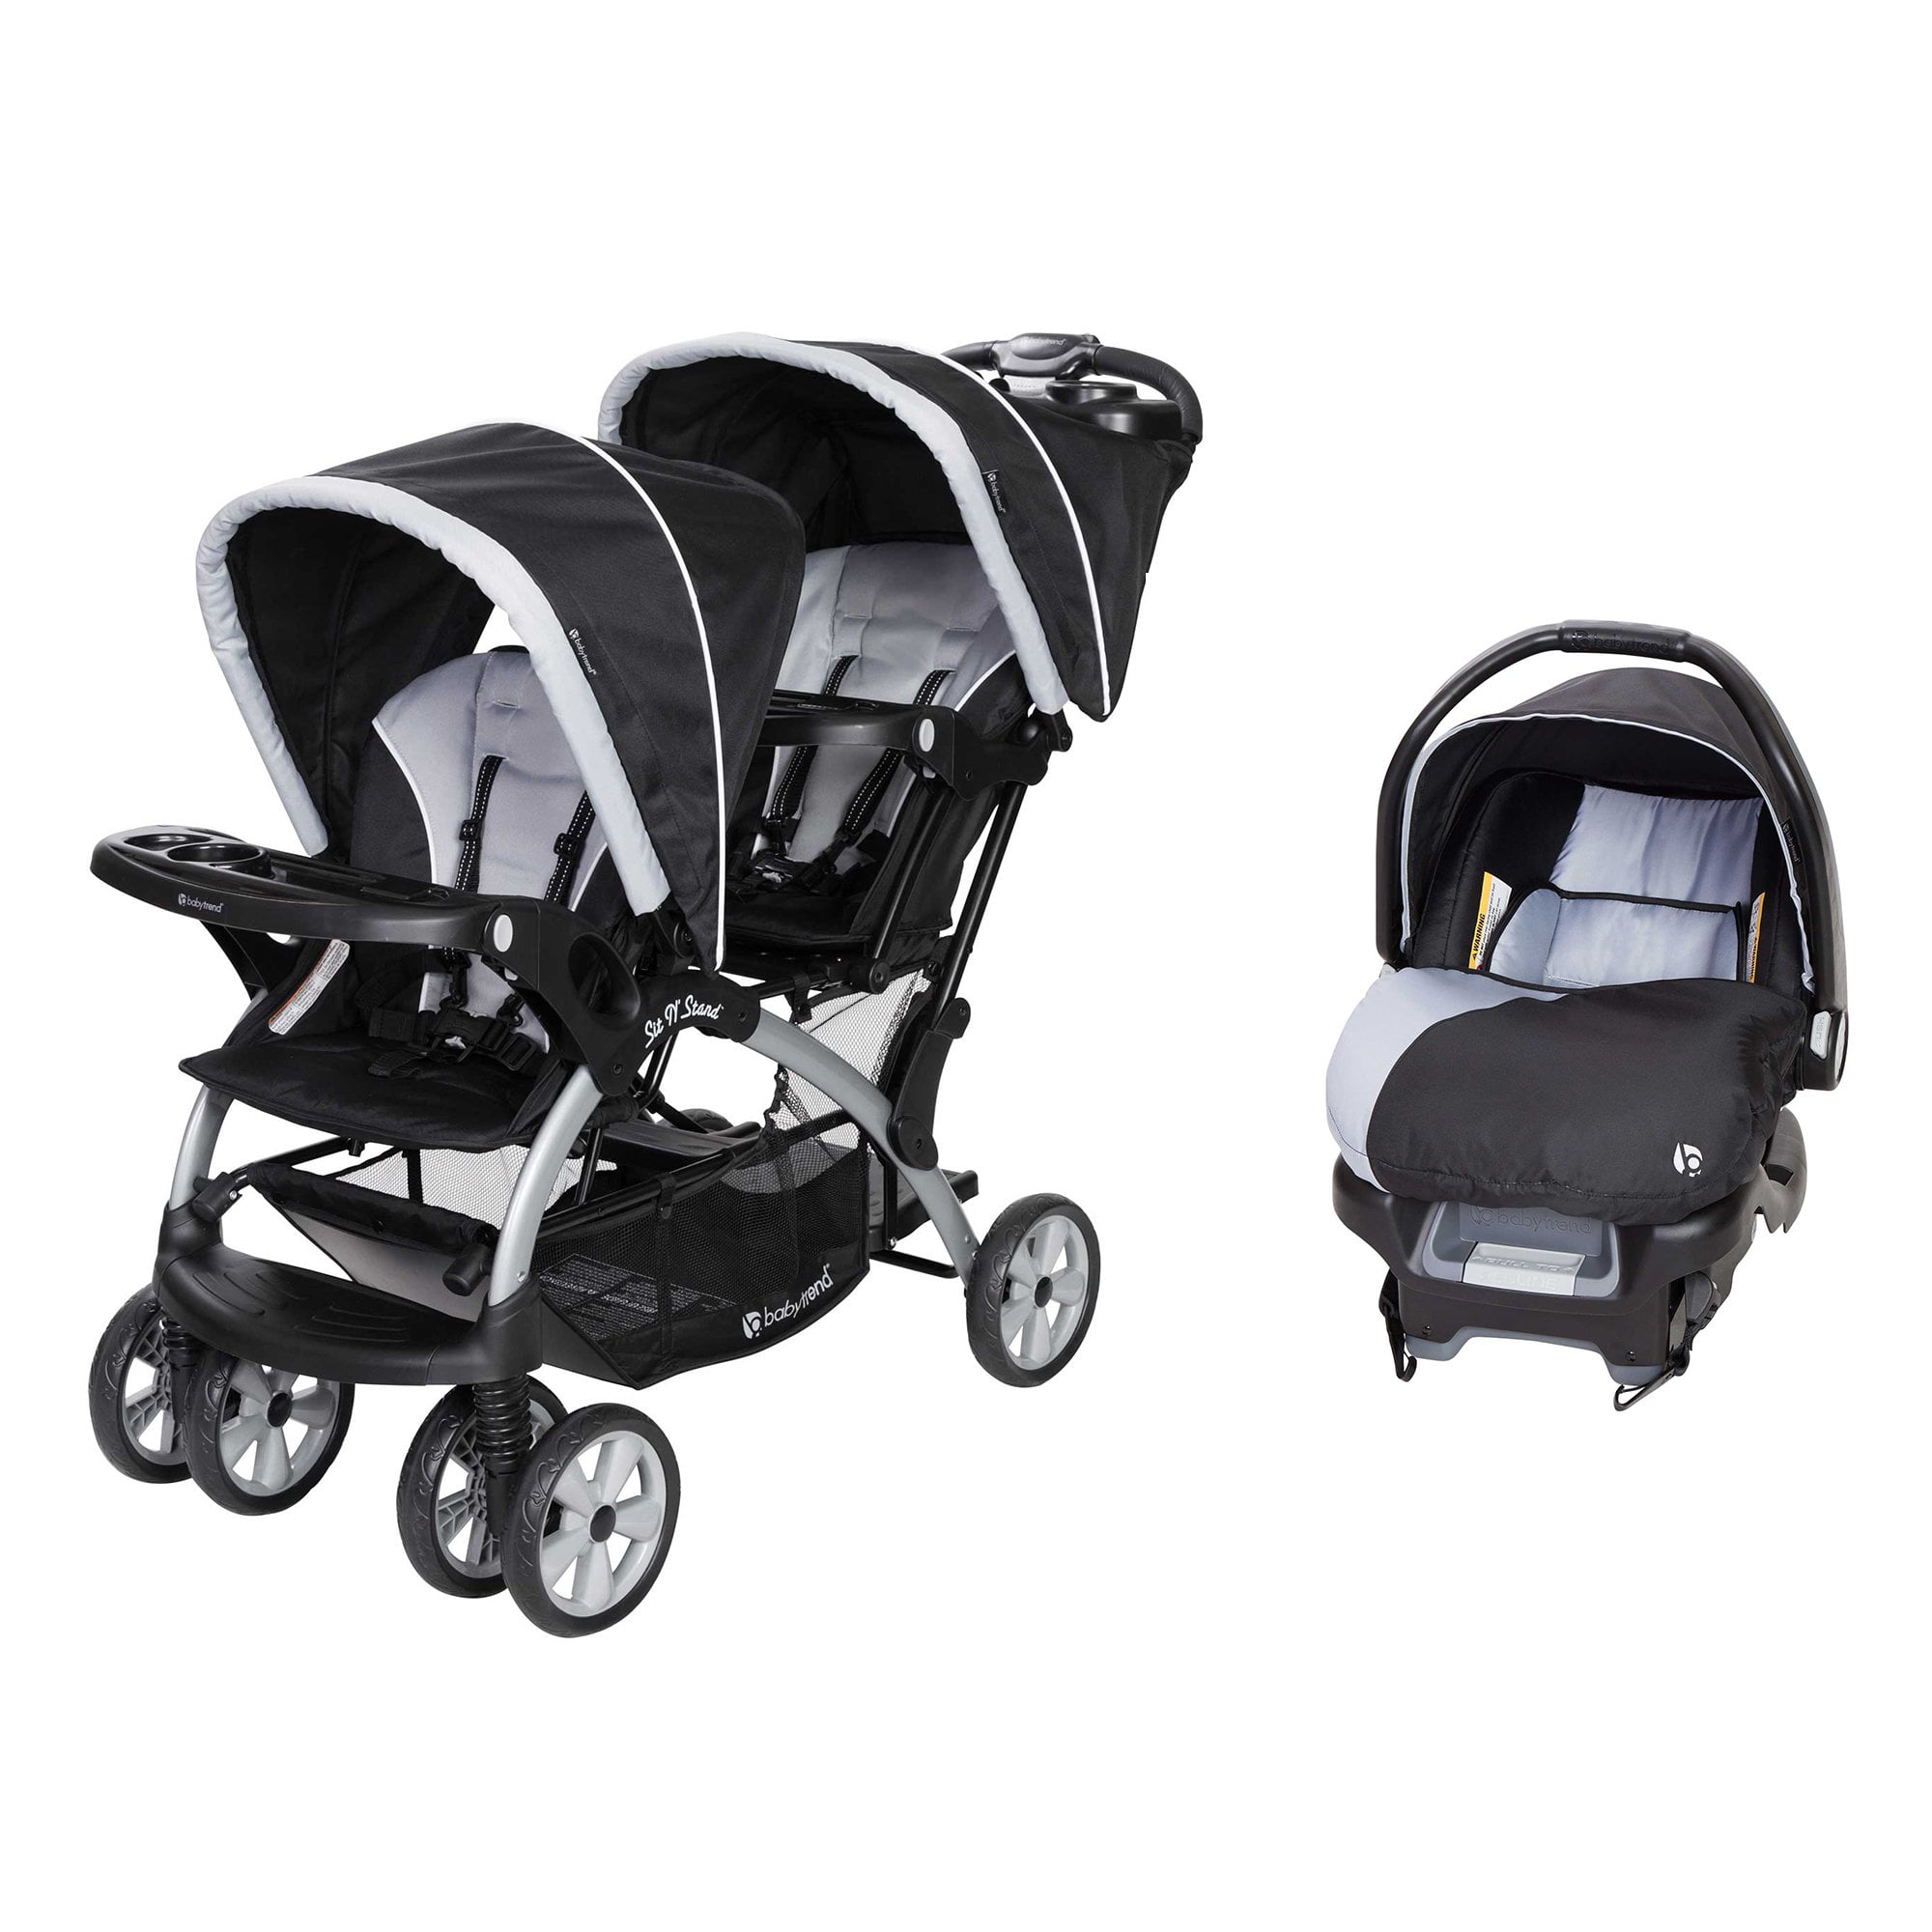 Tandem Stroller Car Seats, Double Strollers With Car Seats